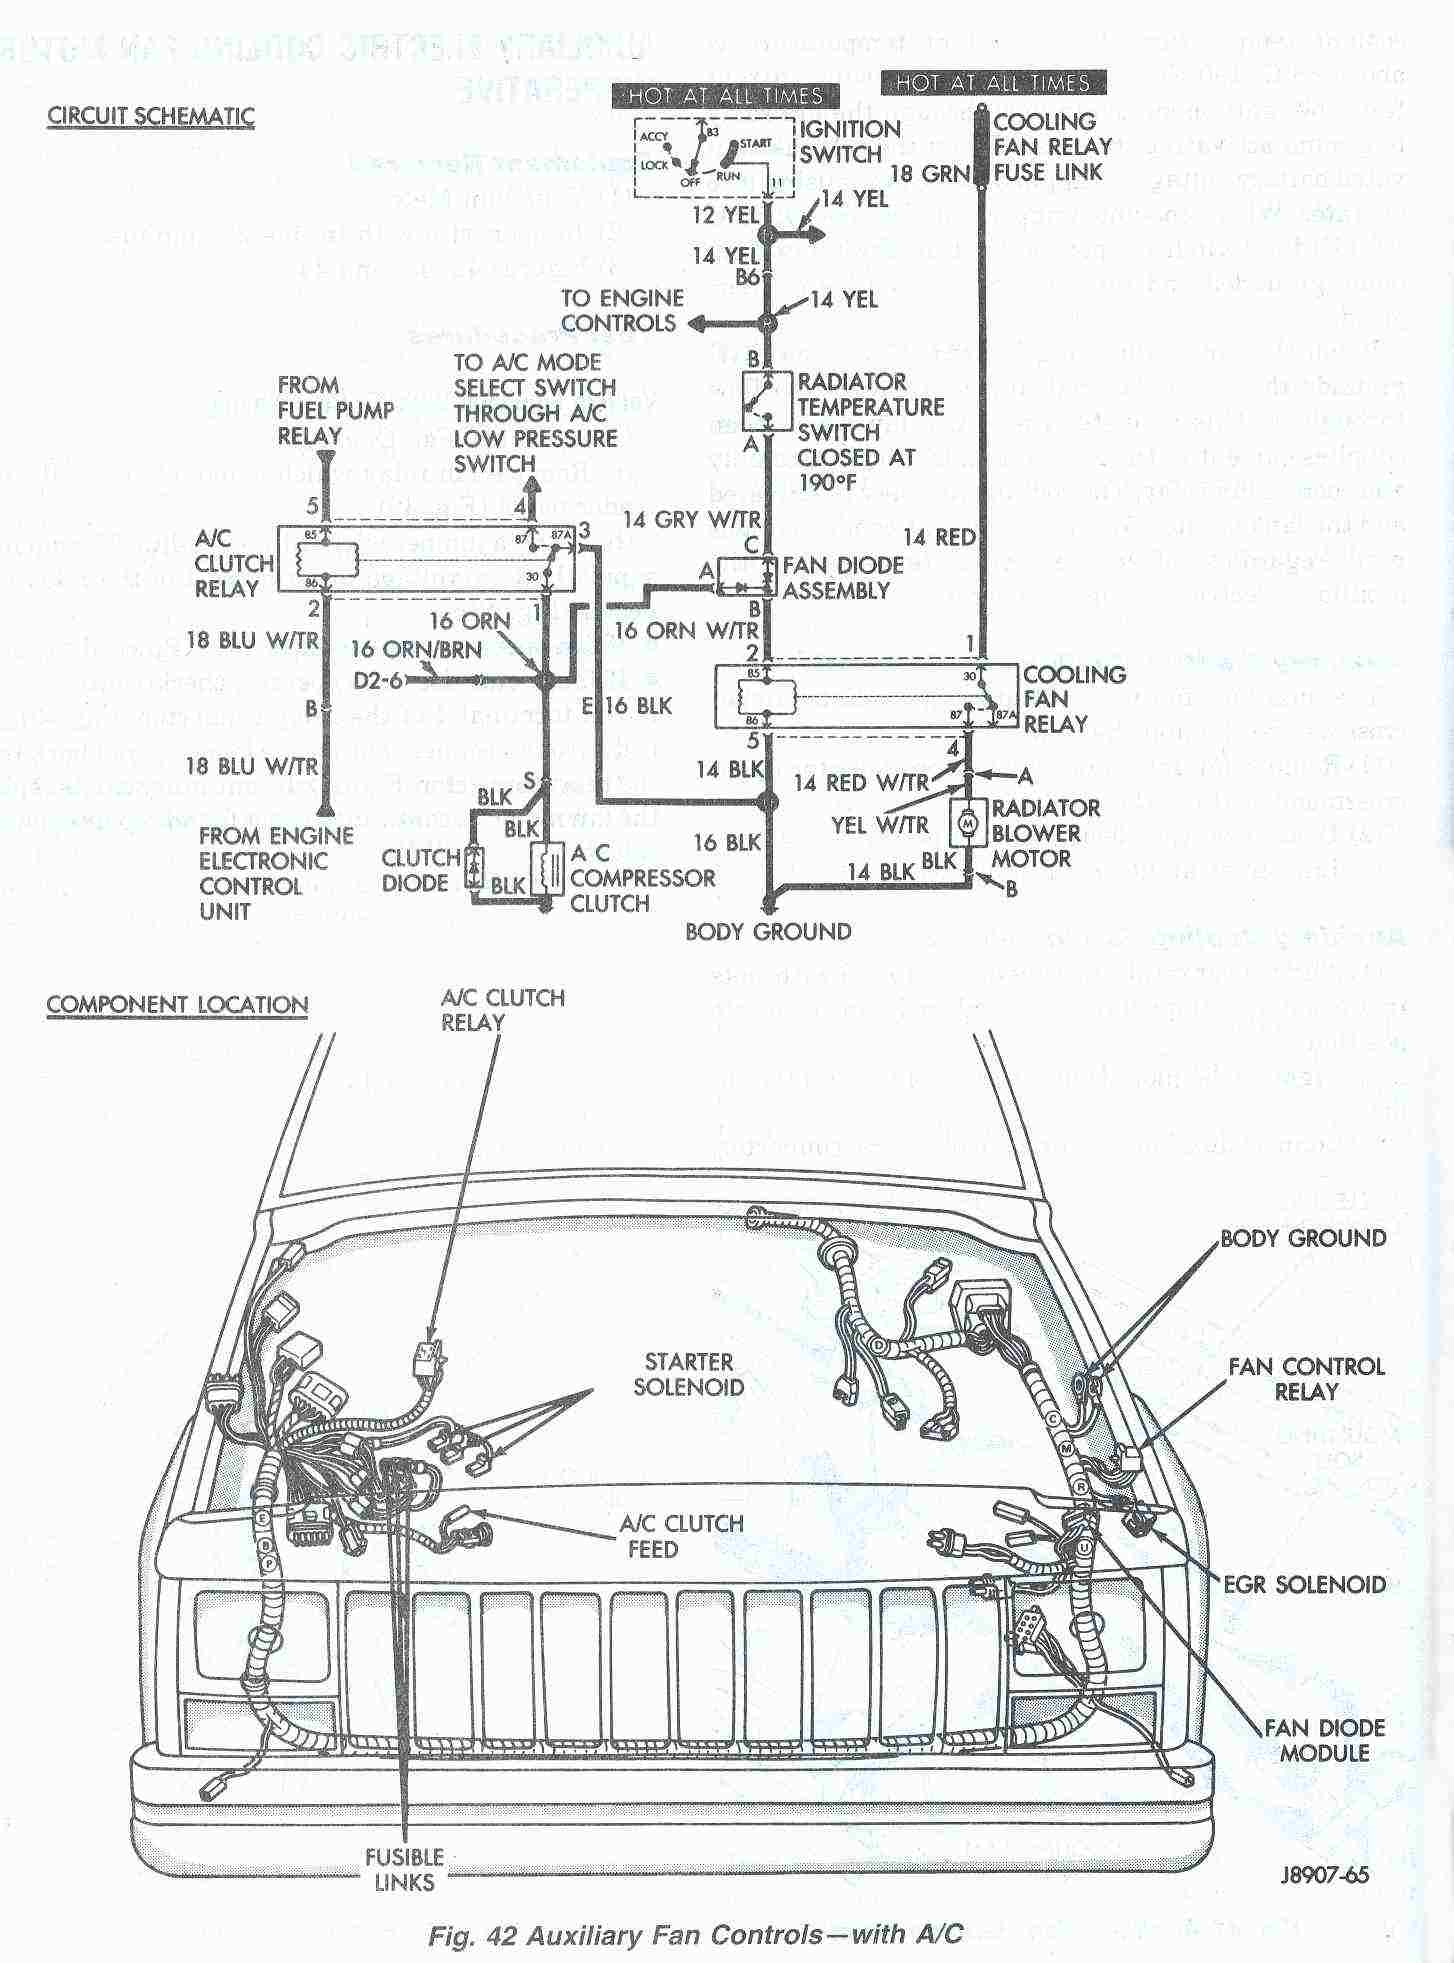 Wiring Diagram For 1988 Jeep Cherokee Horn 1986 Comanchejeep Cooling System Electric Fan 43 And Body Ground